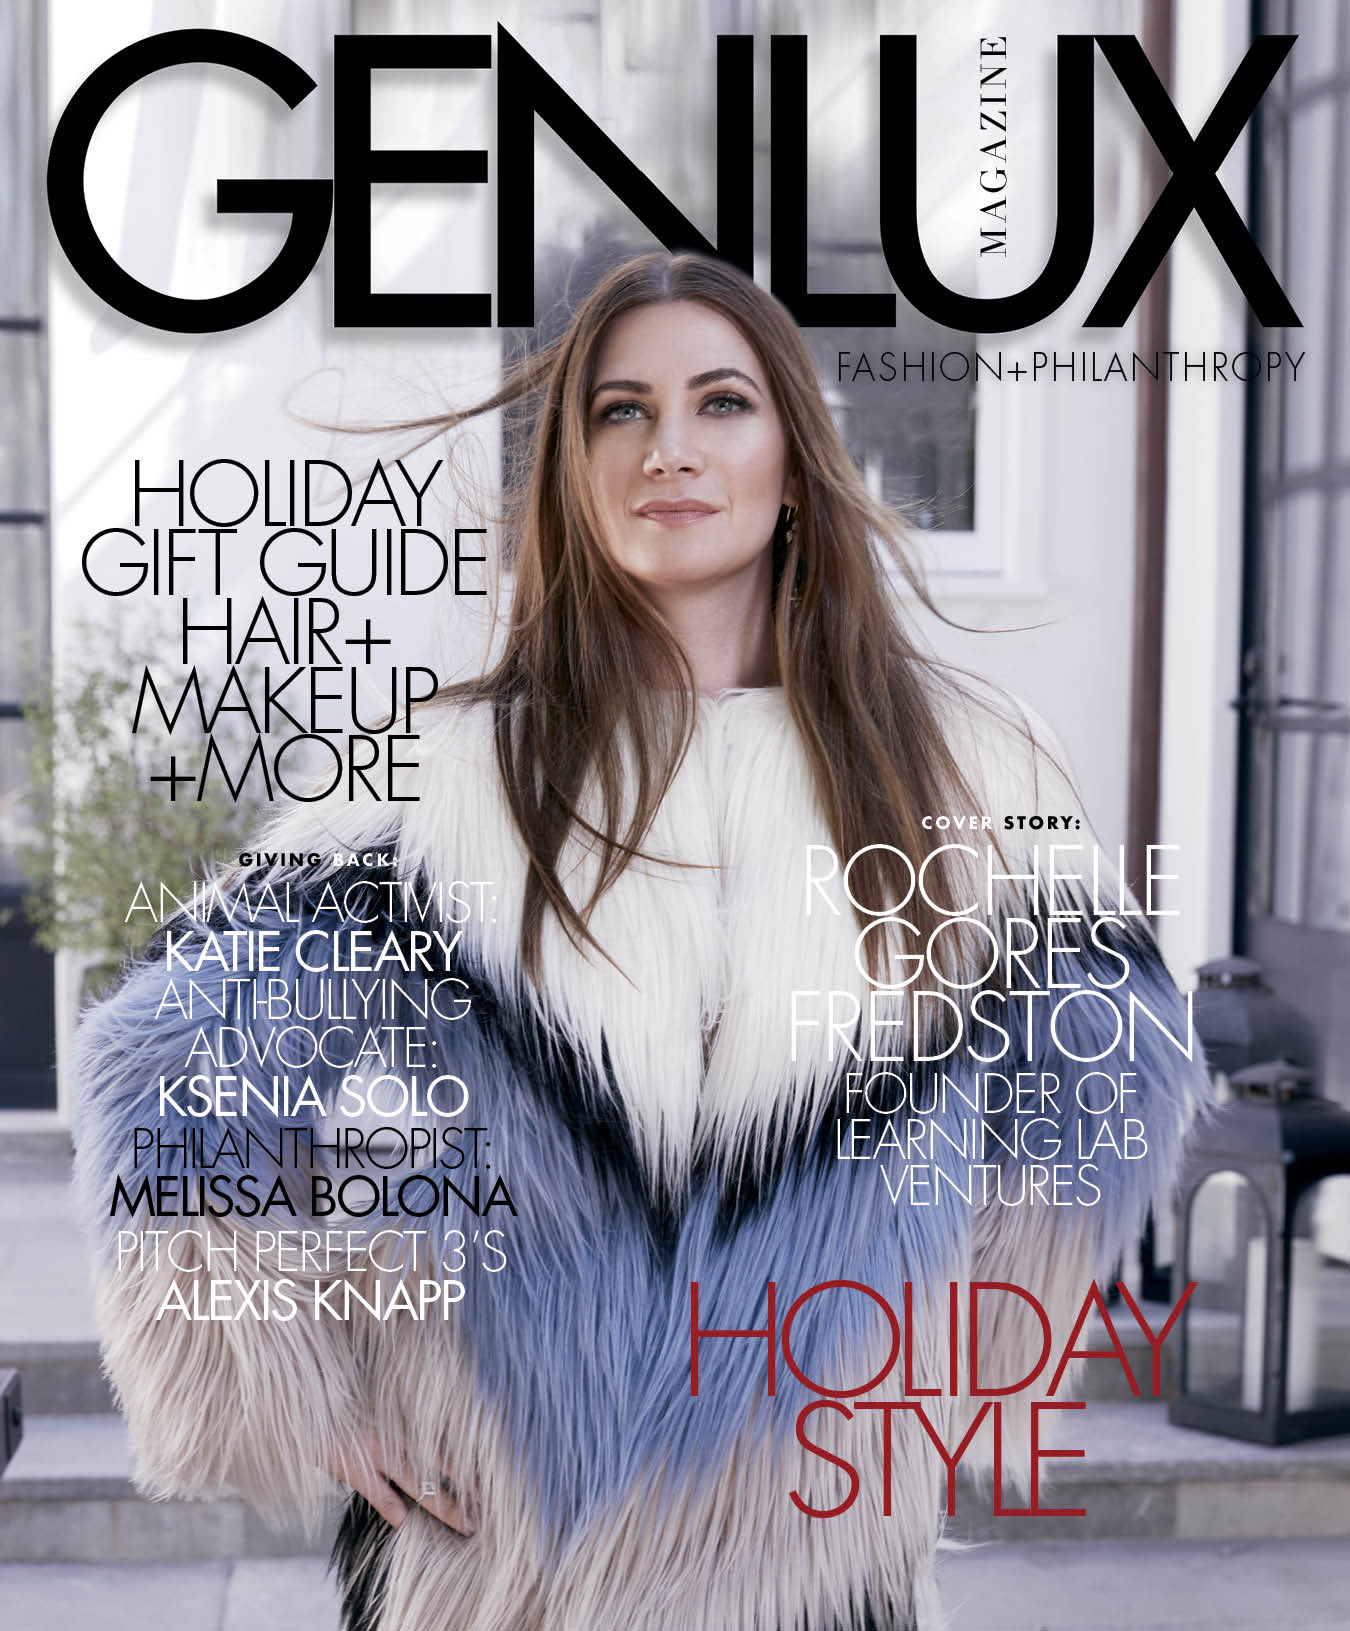 GENLUX_H17_COVER_FINAL_MR_V1-1.jpg